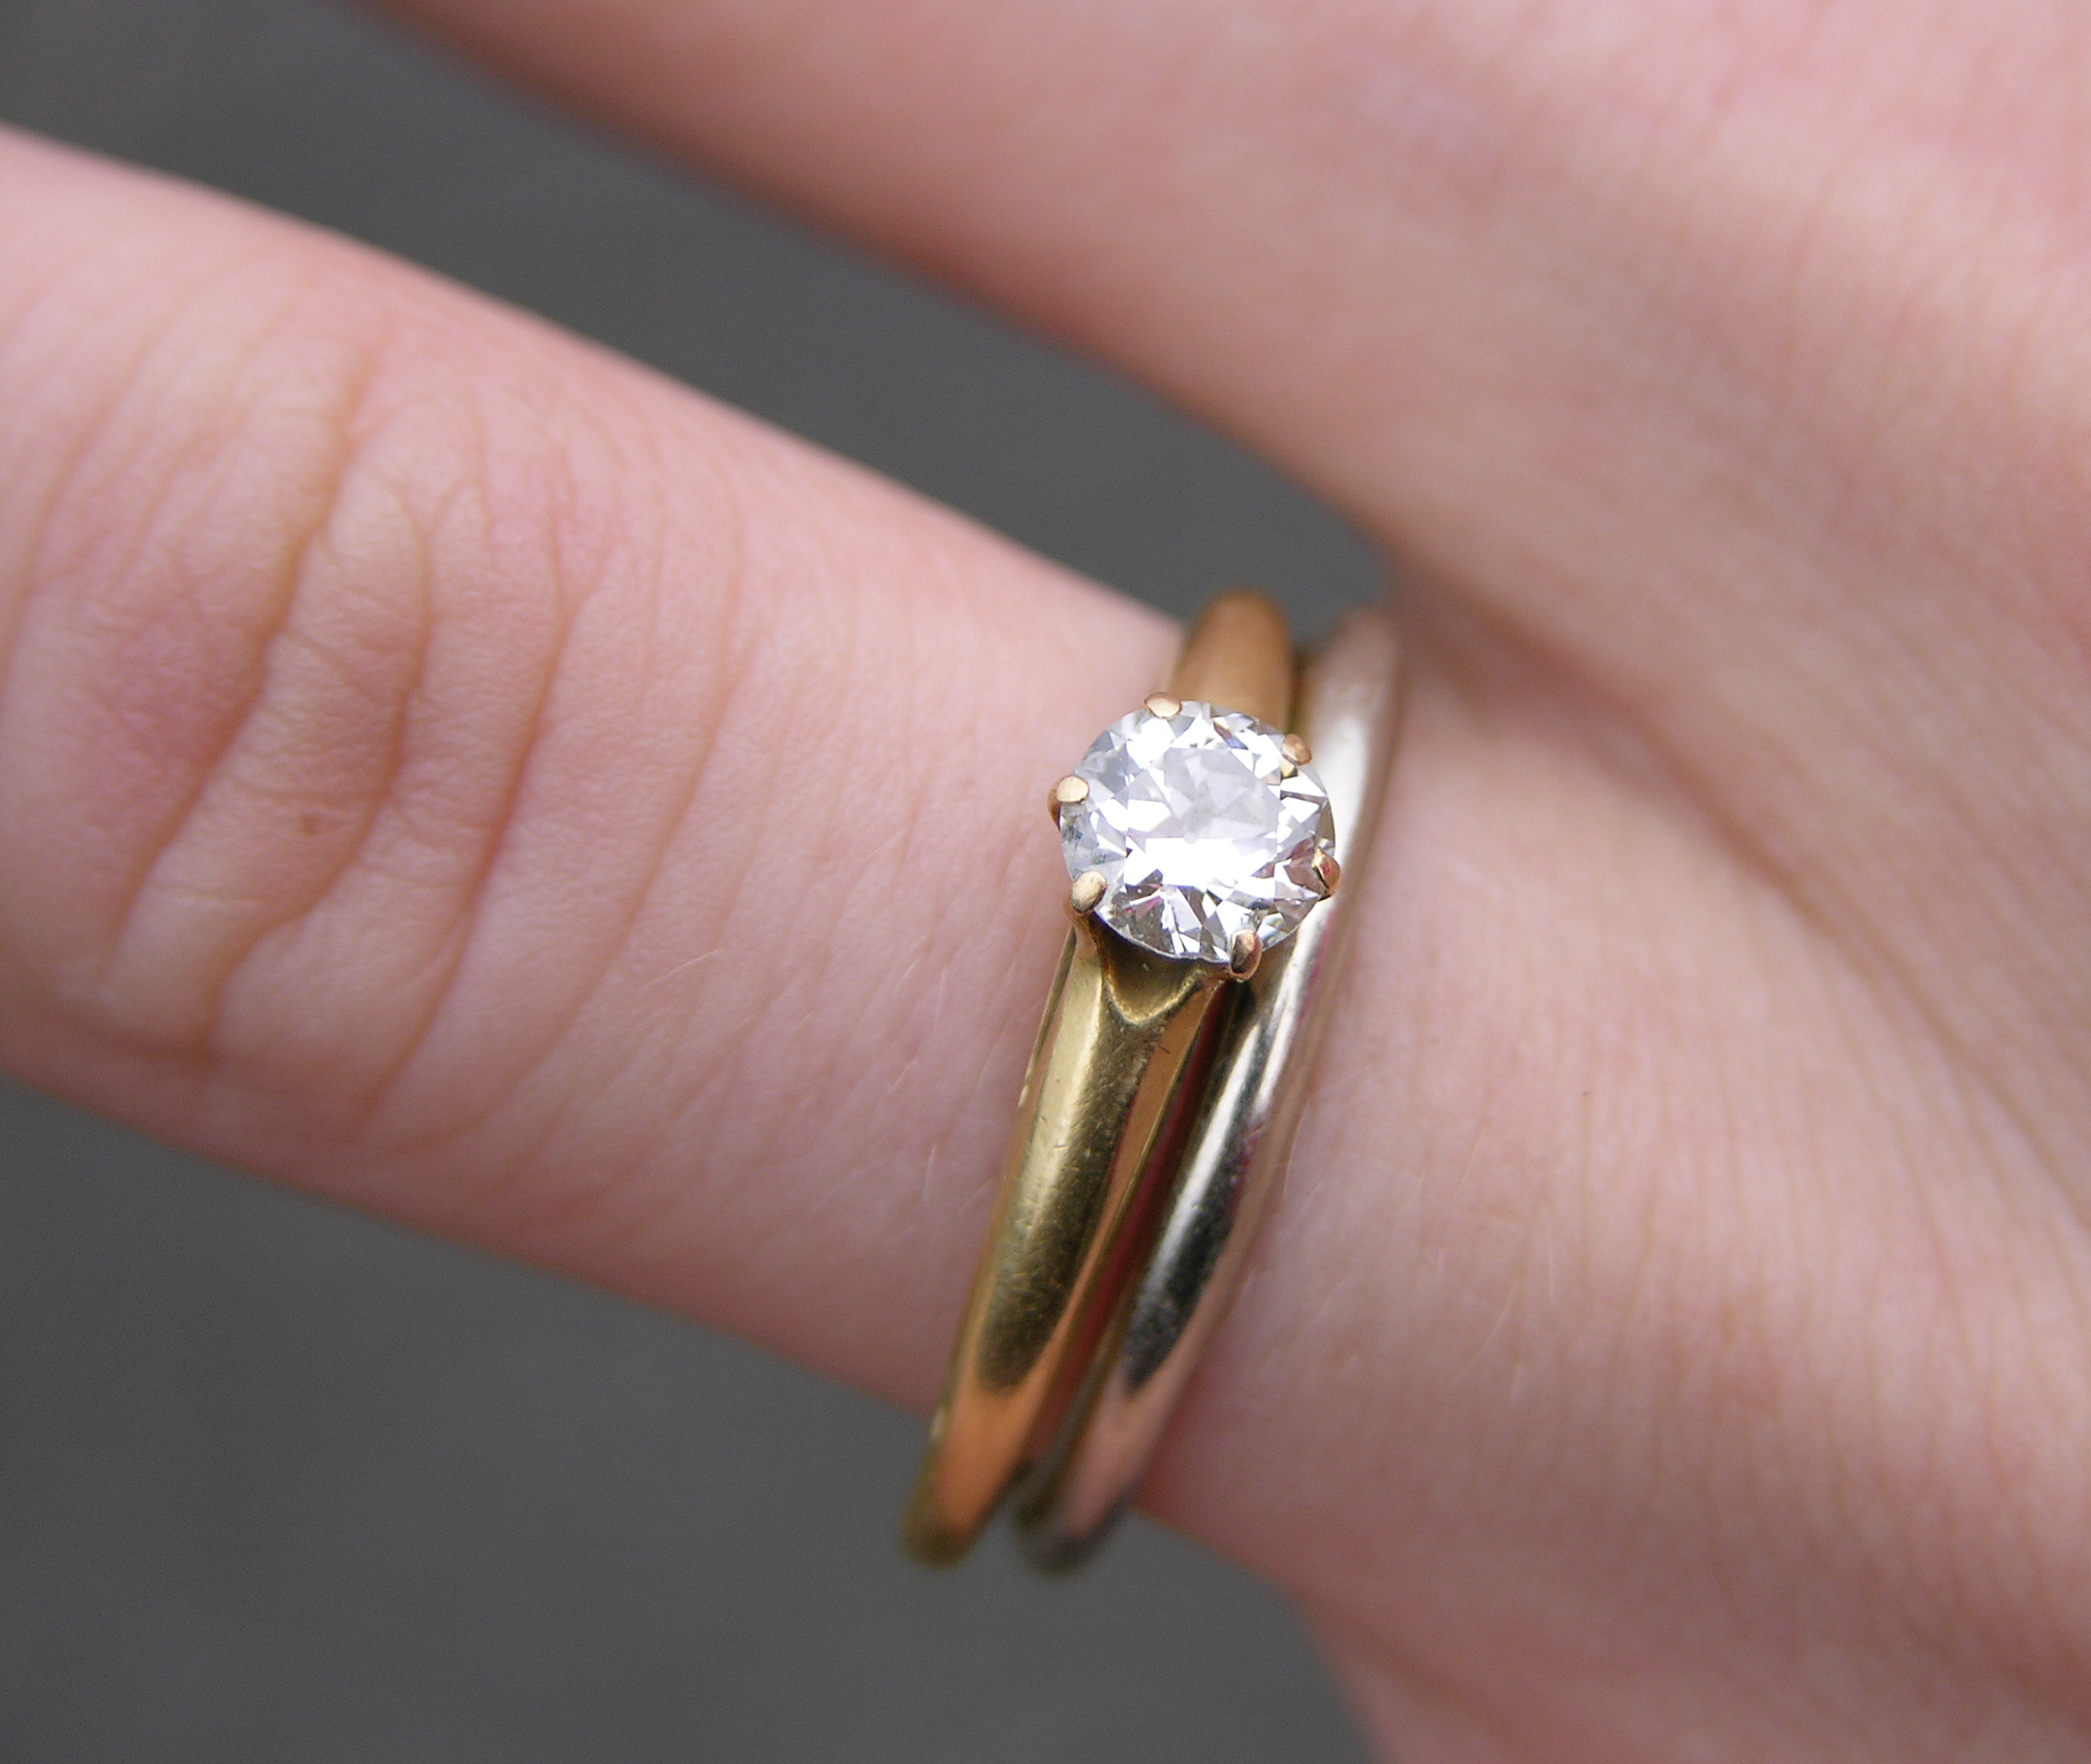 Engagement ring - Wikiwand